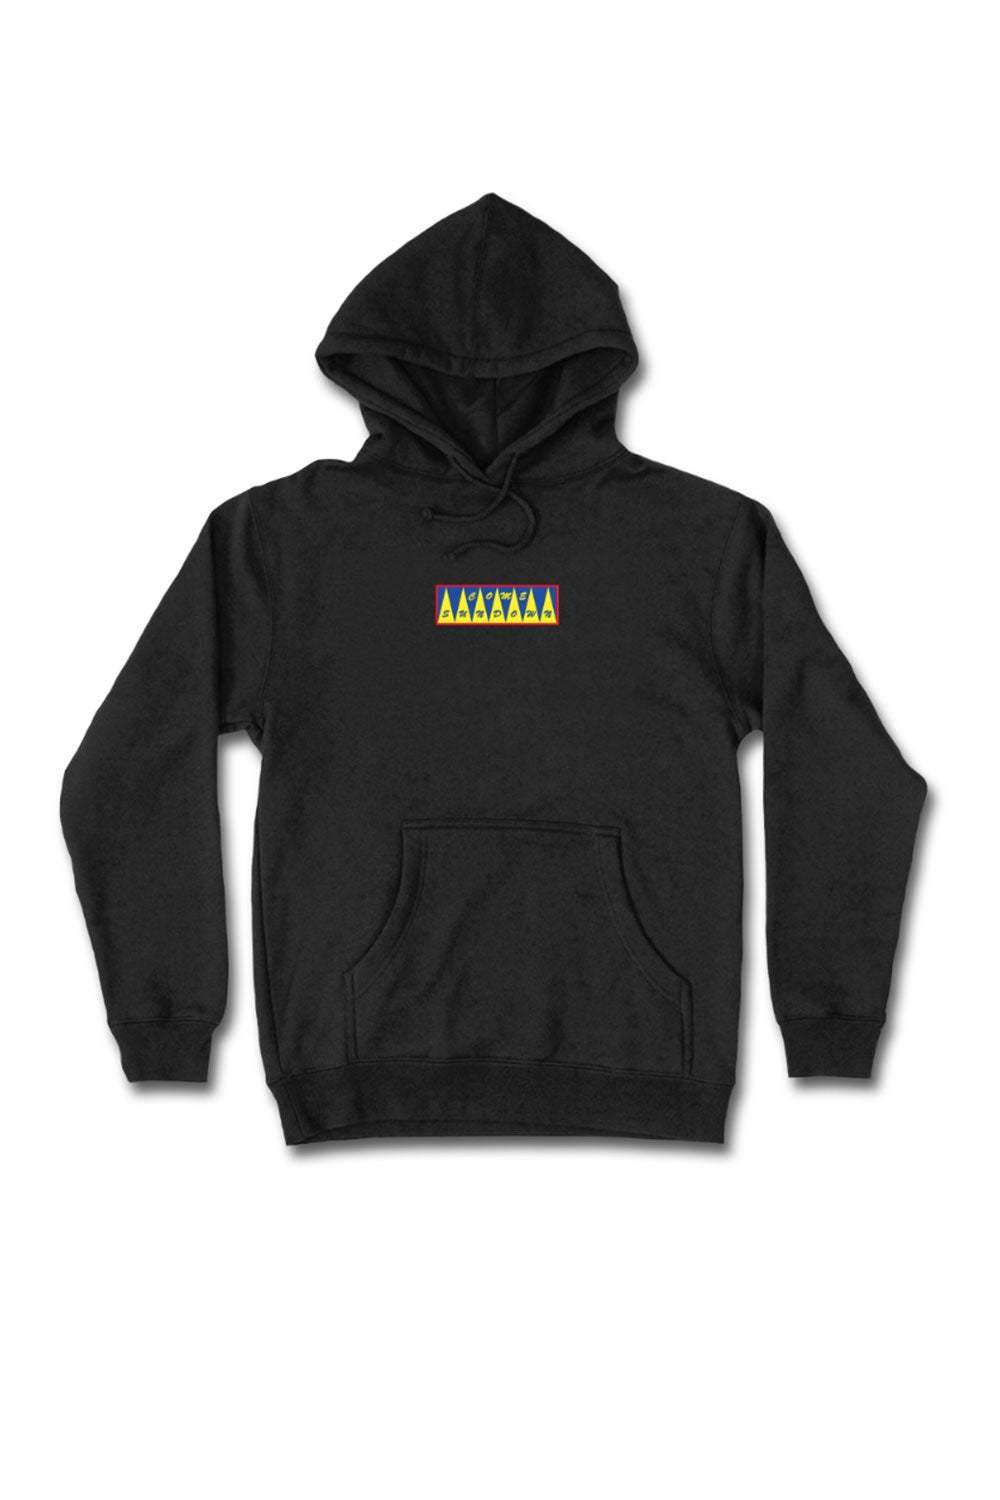 Come Sundown Spikes Embroidered Hoodie - Black